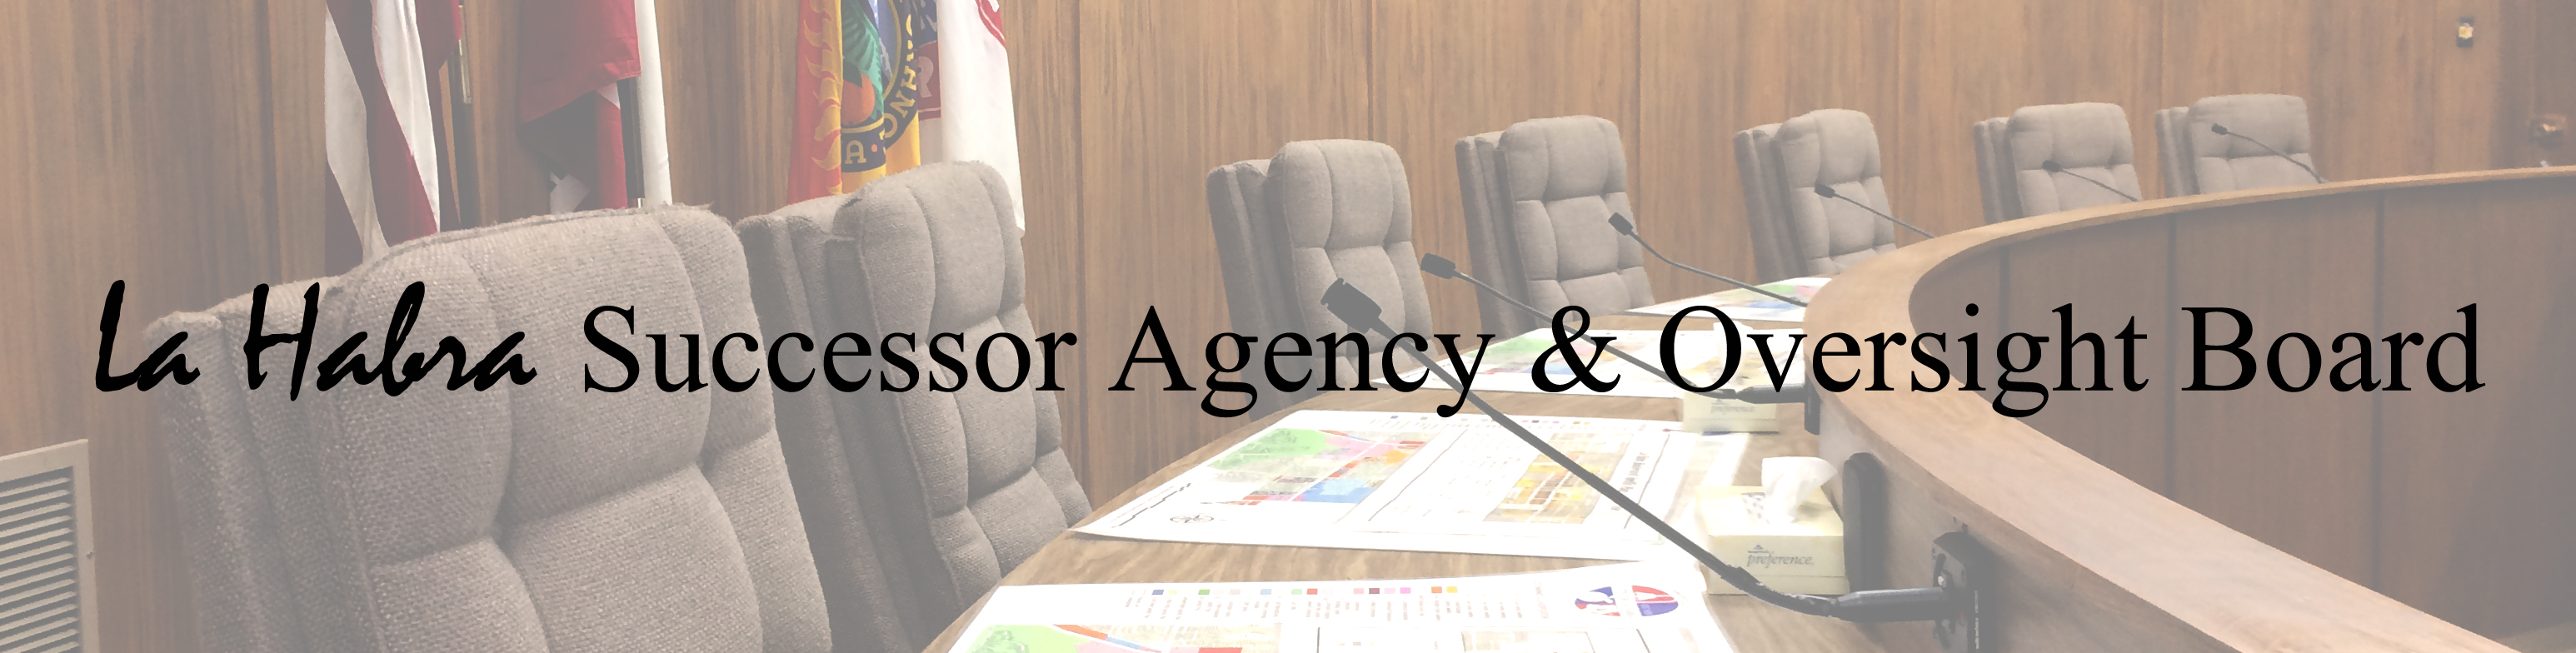 La Habra Successor Agency and Oversight Board